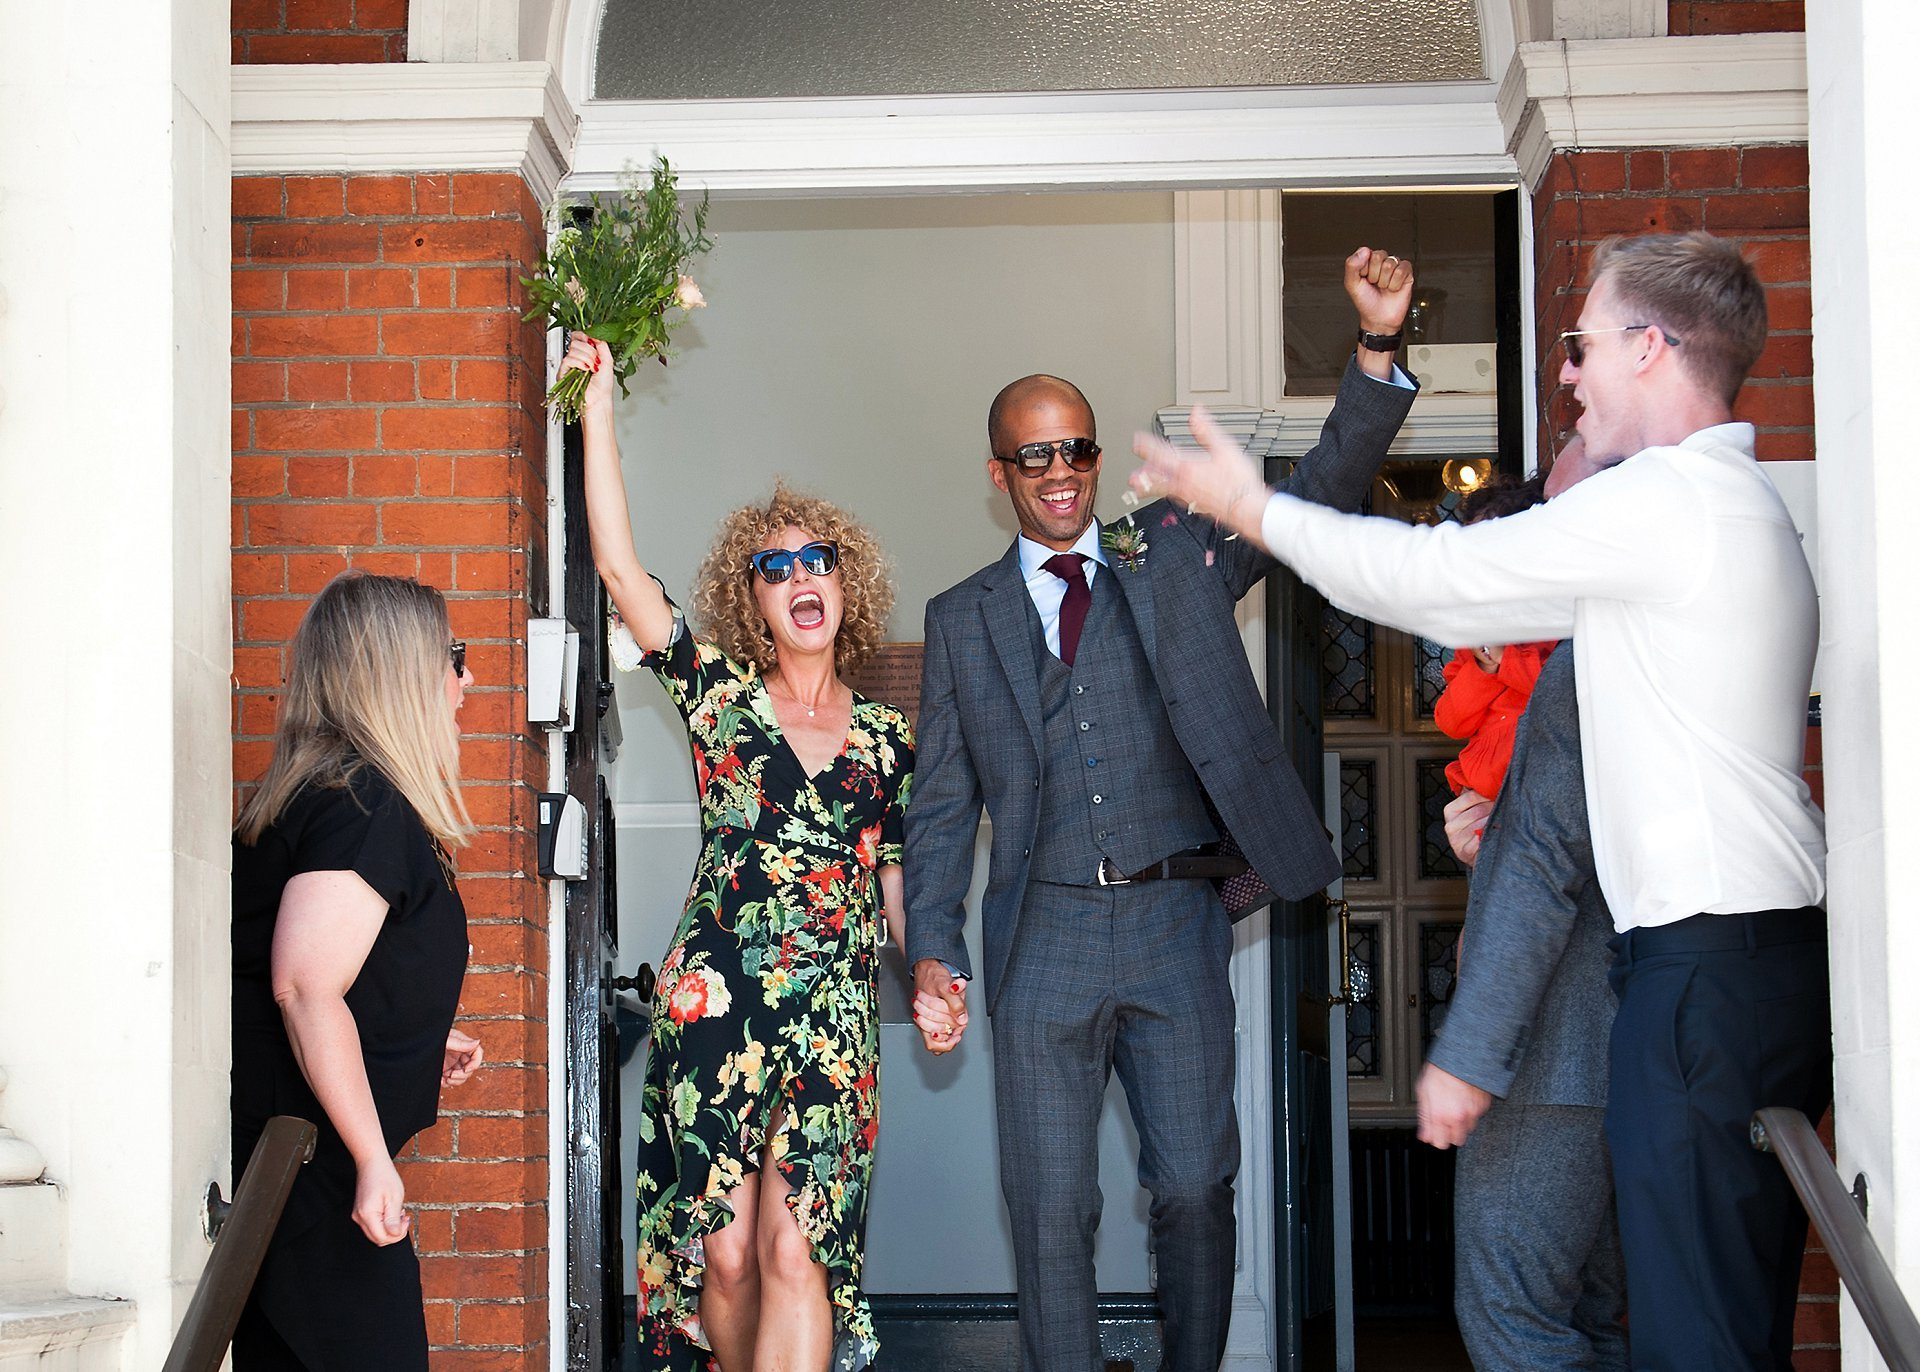 The bride and groom exit Mayfair Library wearing sunglasses with arms aloft and guests throwing confetti